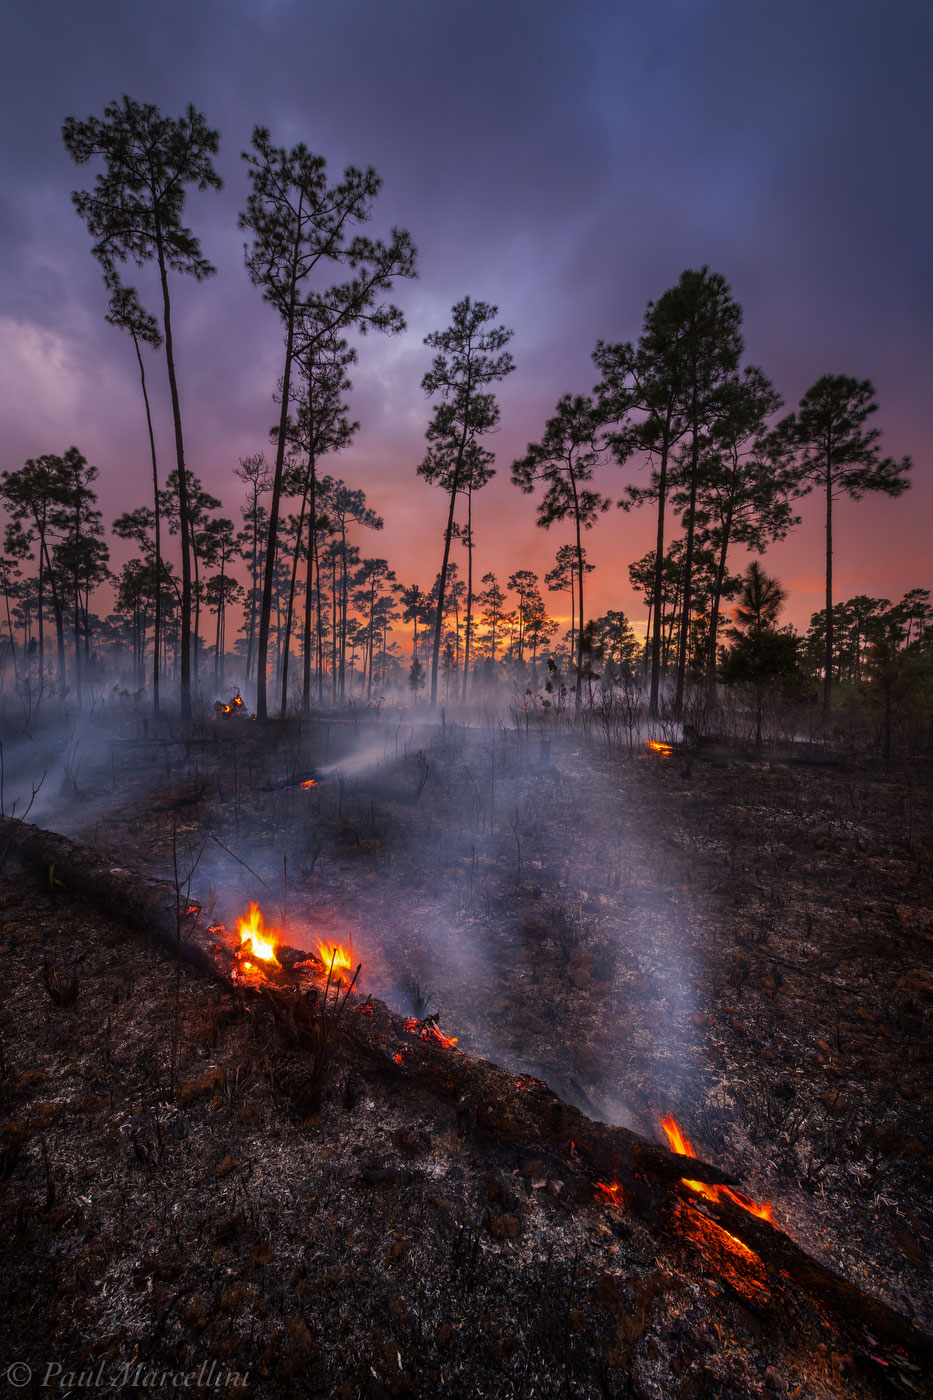 everglades, rocky pinelands, fire, florida, globally imperiled, , nature, photography, florida national parks, photo